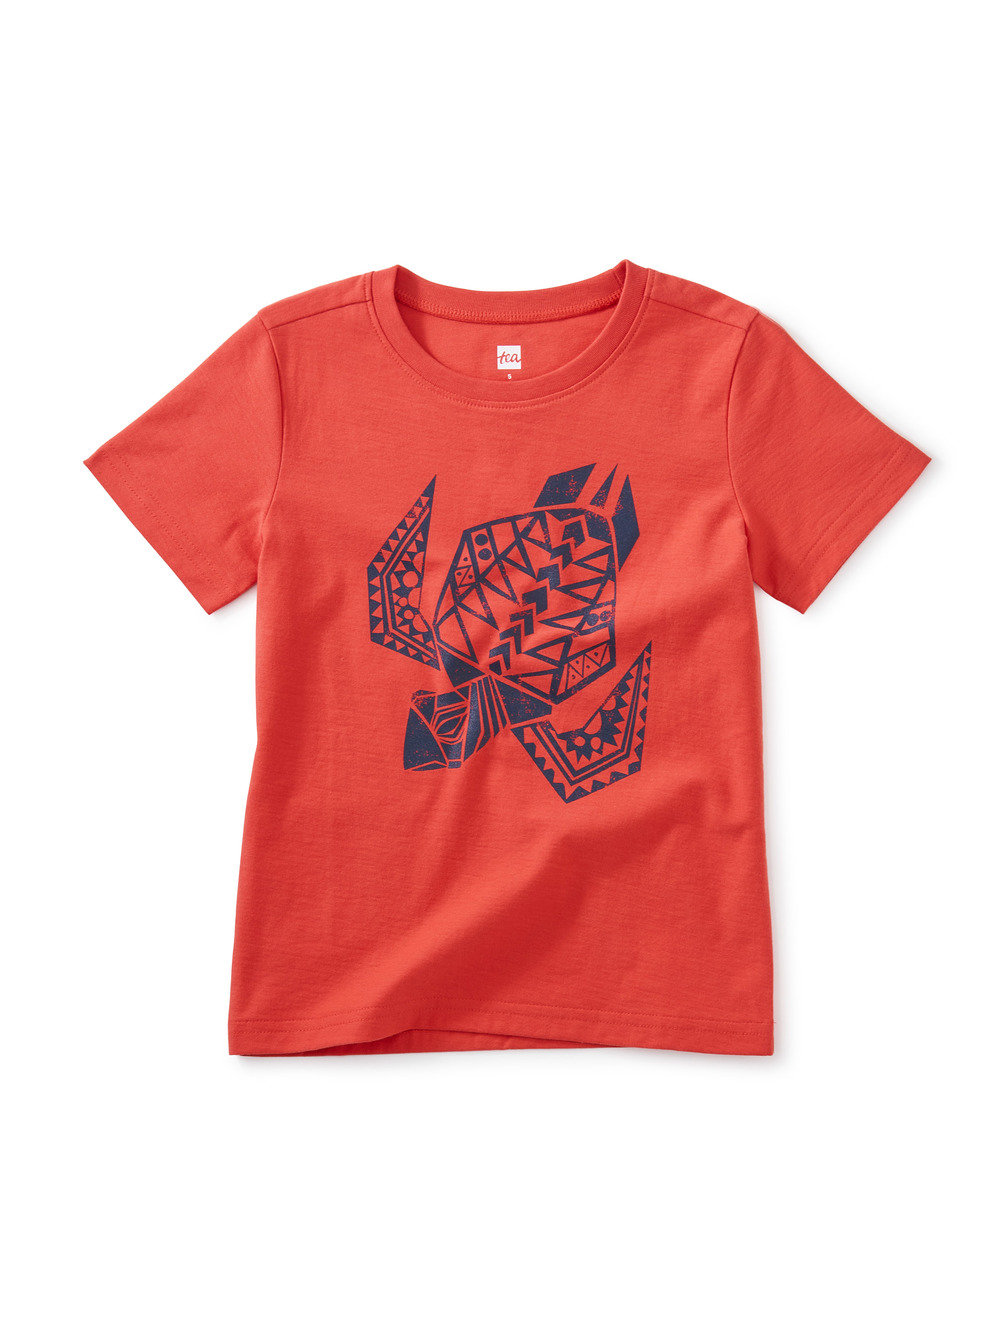 Turtle Tale Graphic Tee